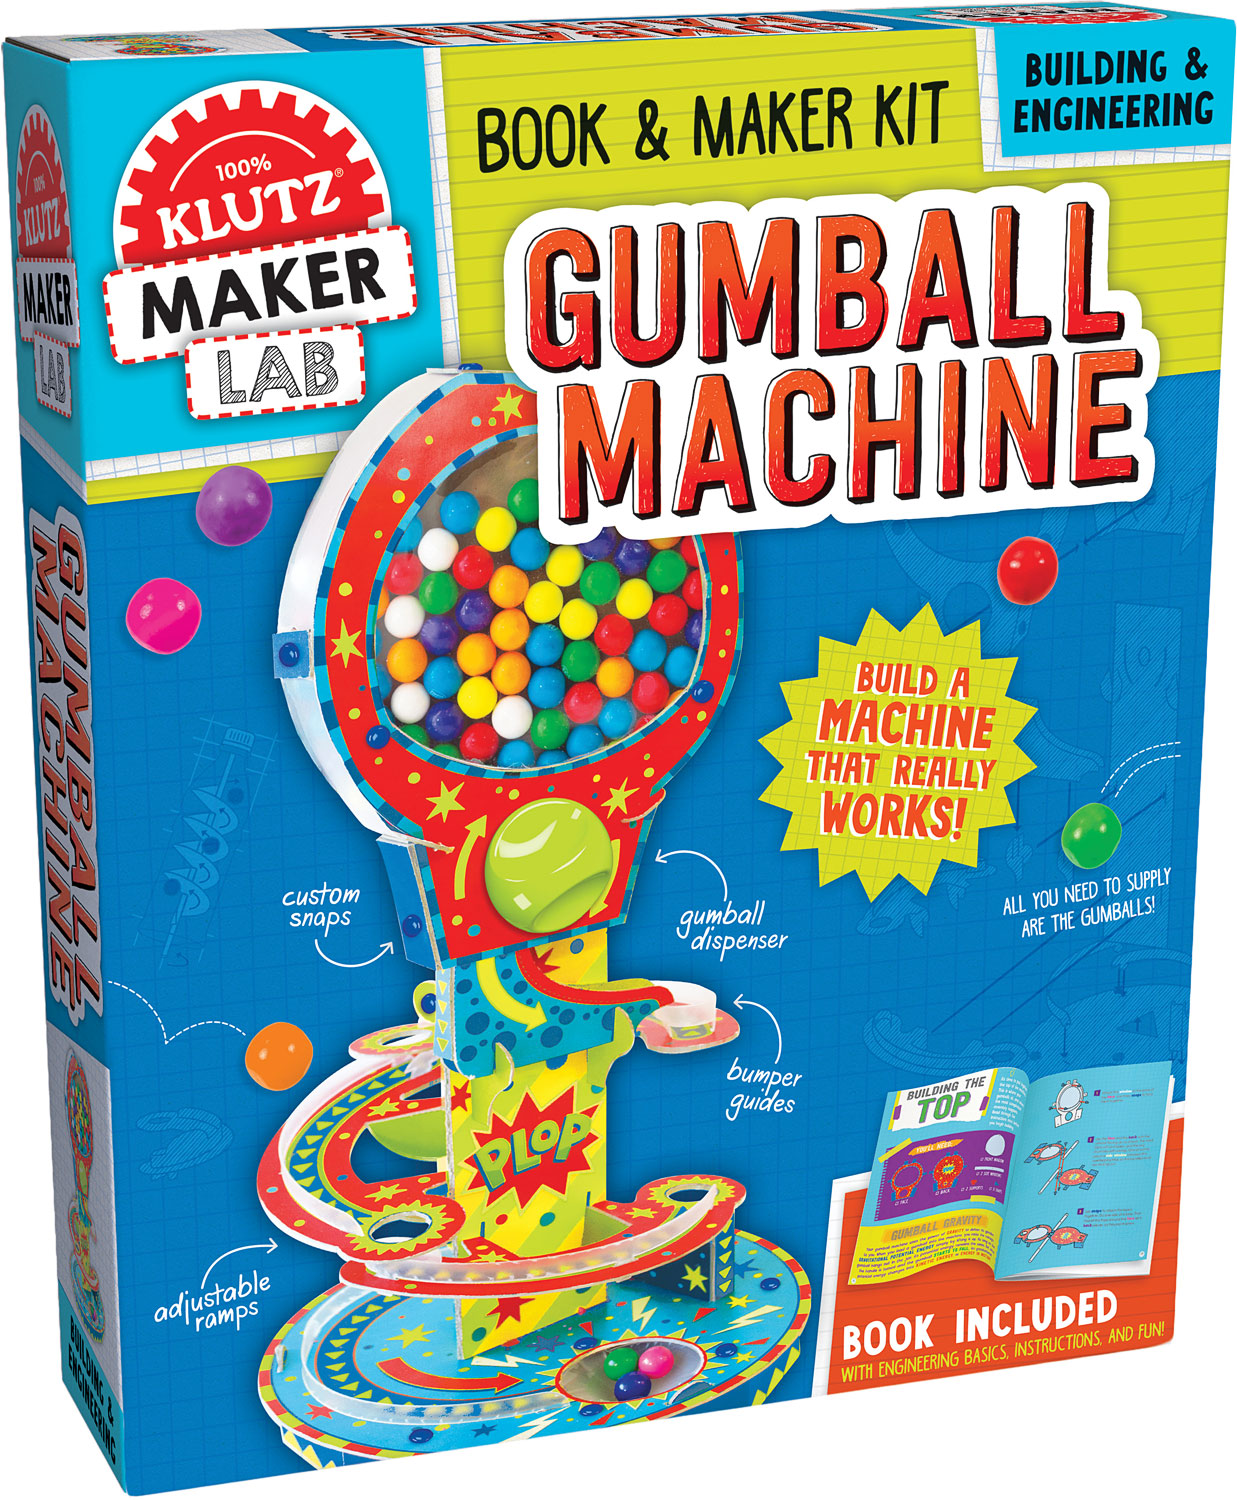 Gumball Machine Timeless Toys Chicago